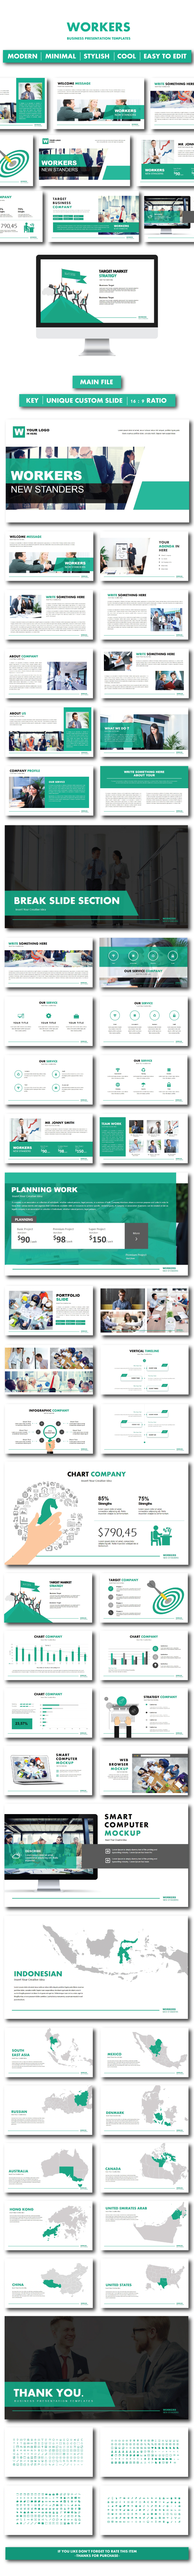 Workers Keynote Business Templates - Business PowerPoint Templates